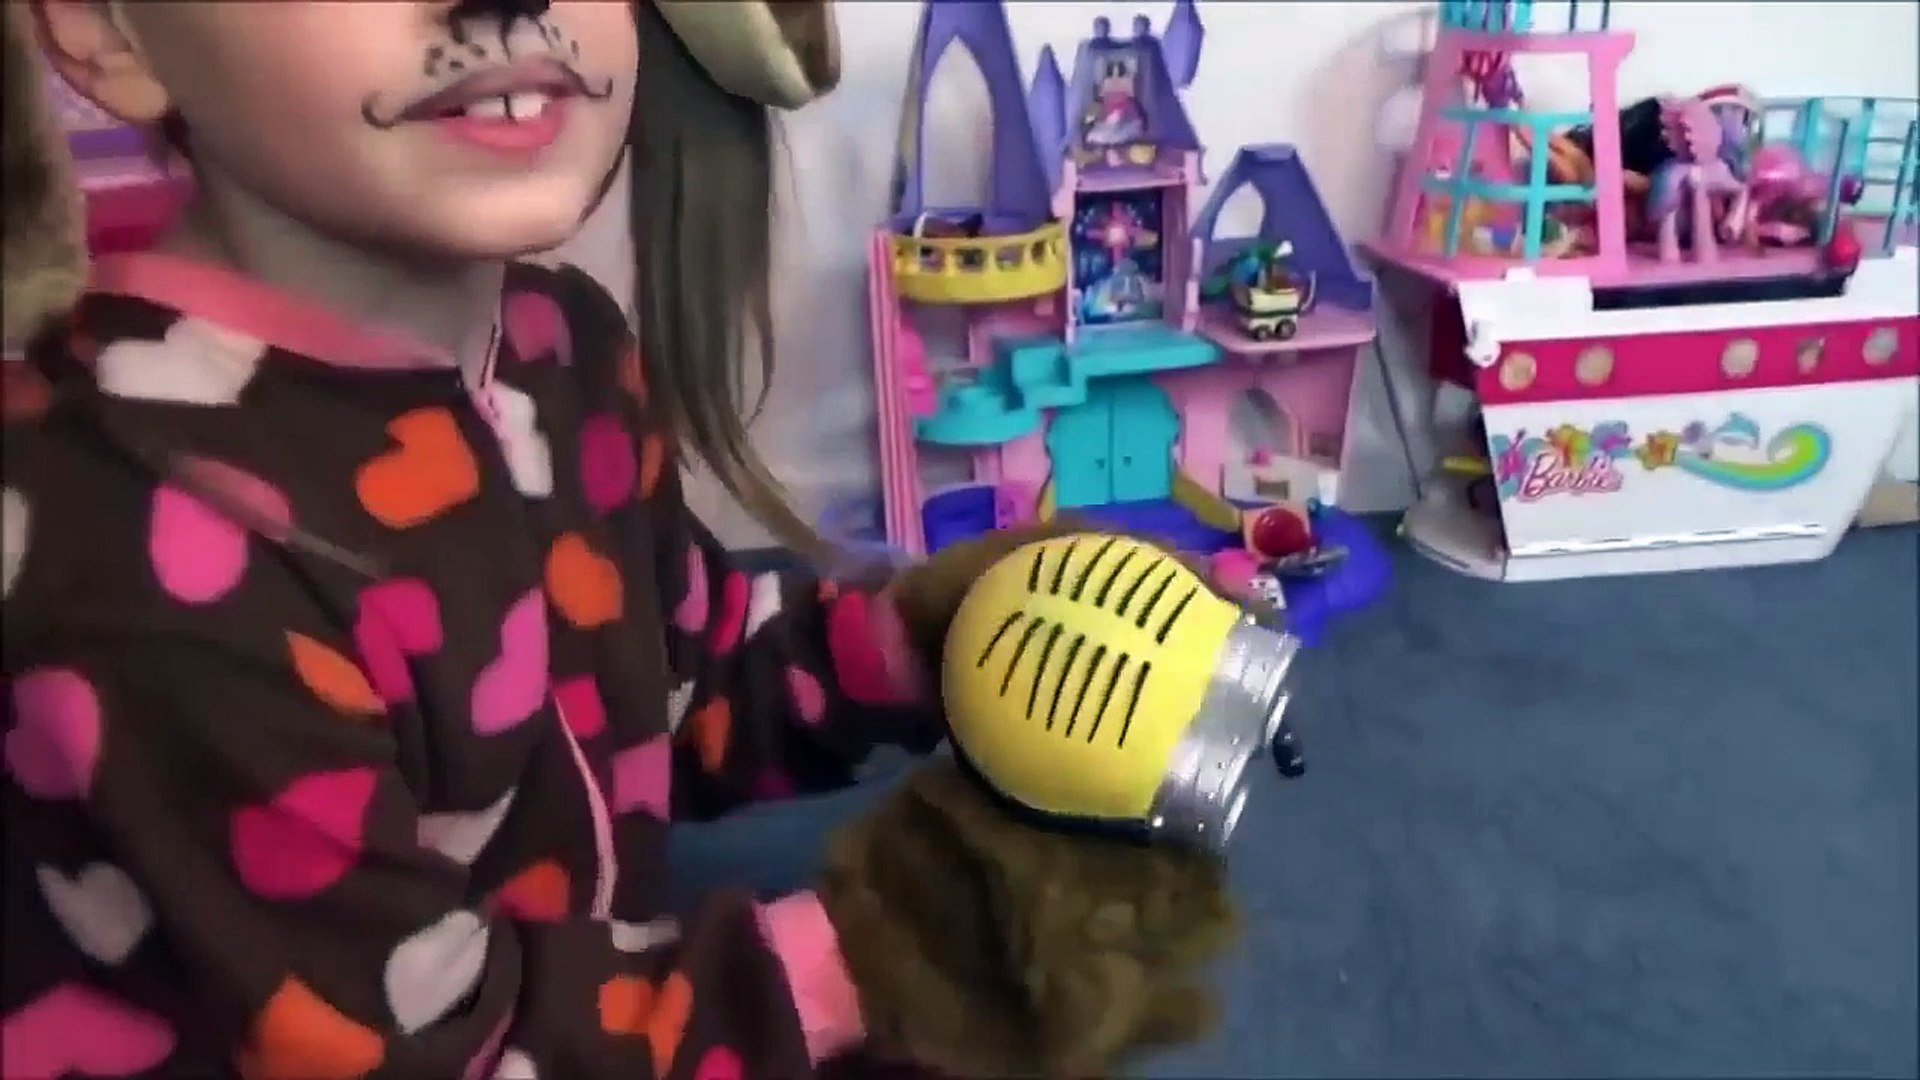 Toy Freaks - Freak Family Vlogs - Bad Baby Toy Freaks Puppy Kitty Pizza Challenge Victoria Annabelle